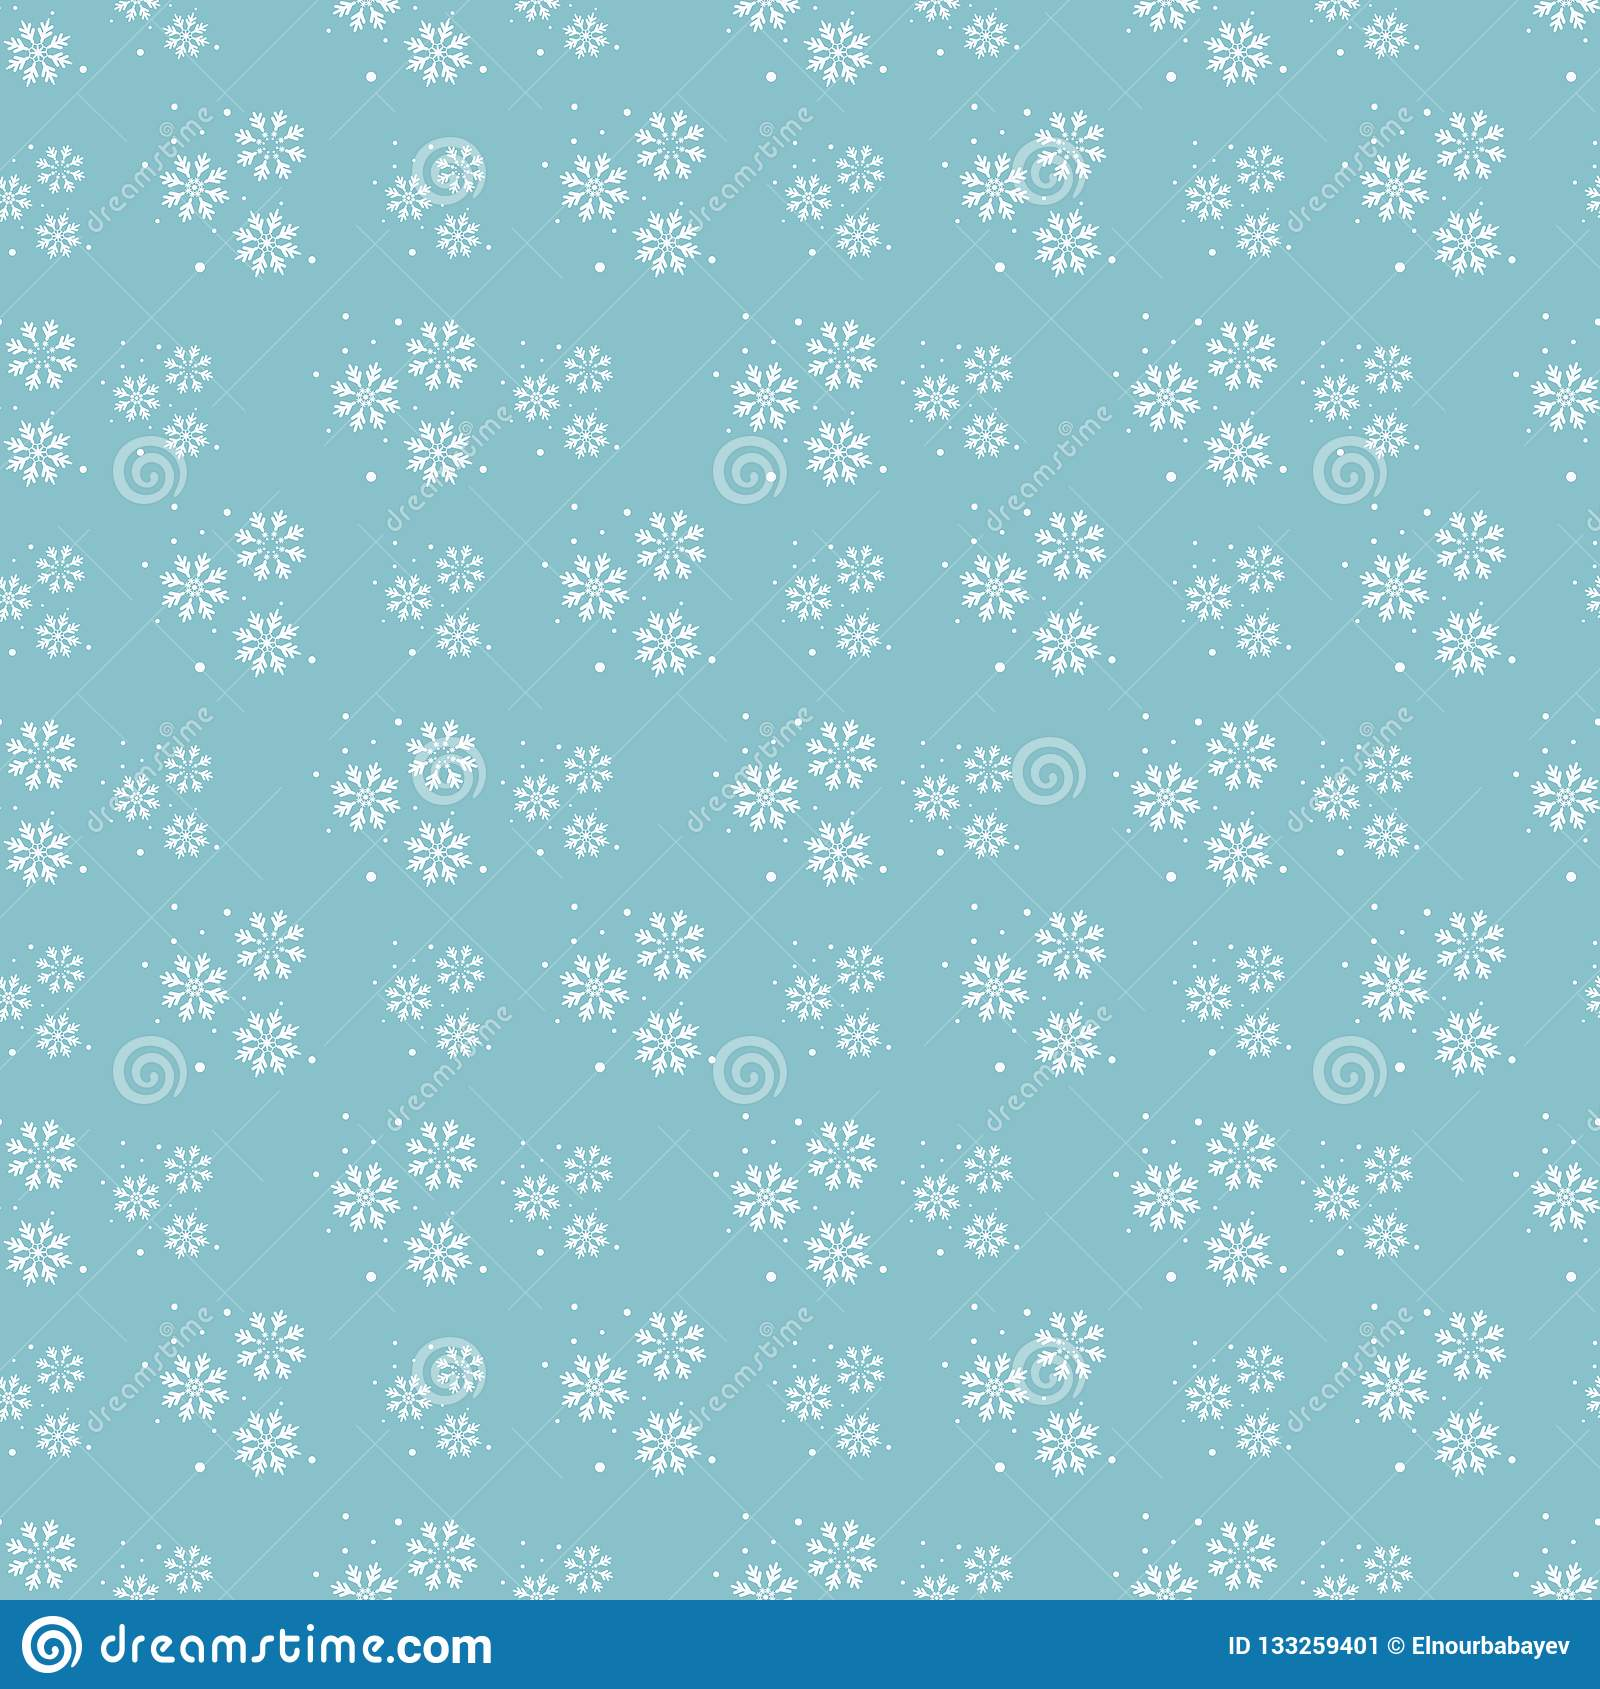 2fce717af78 Snowflake Seamless Pattern. Snow On Blue Background. Abstract ...